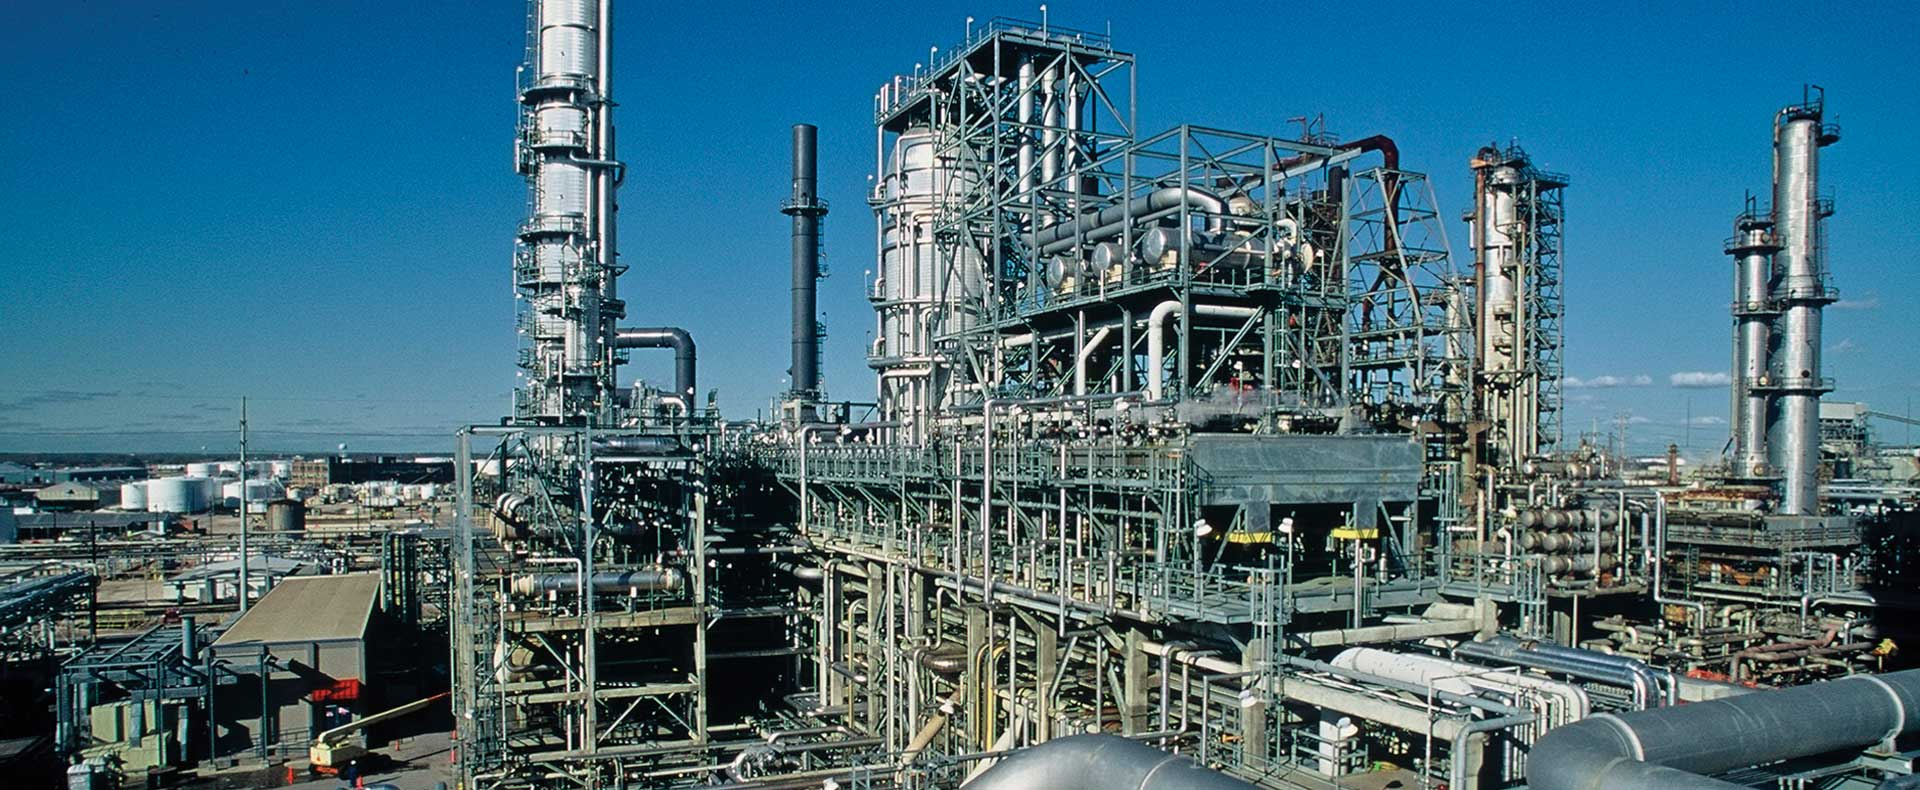 Lyondell Houston Refinery Restoring Production After Steam